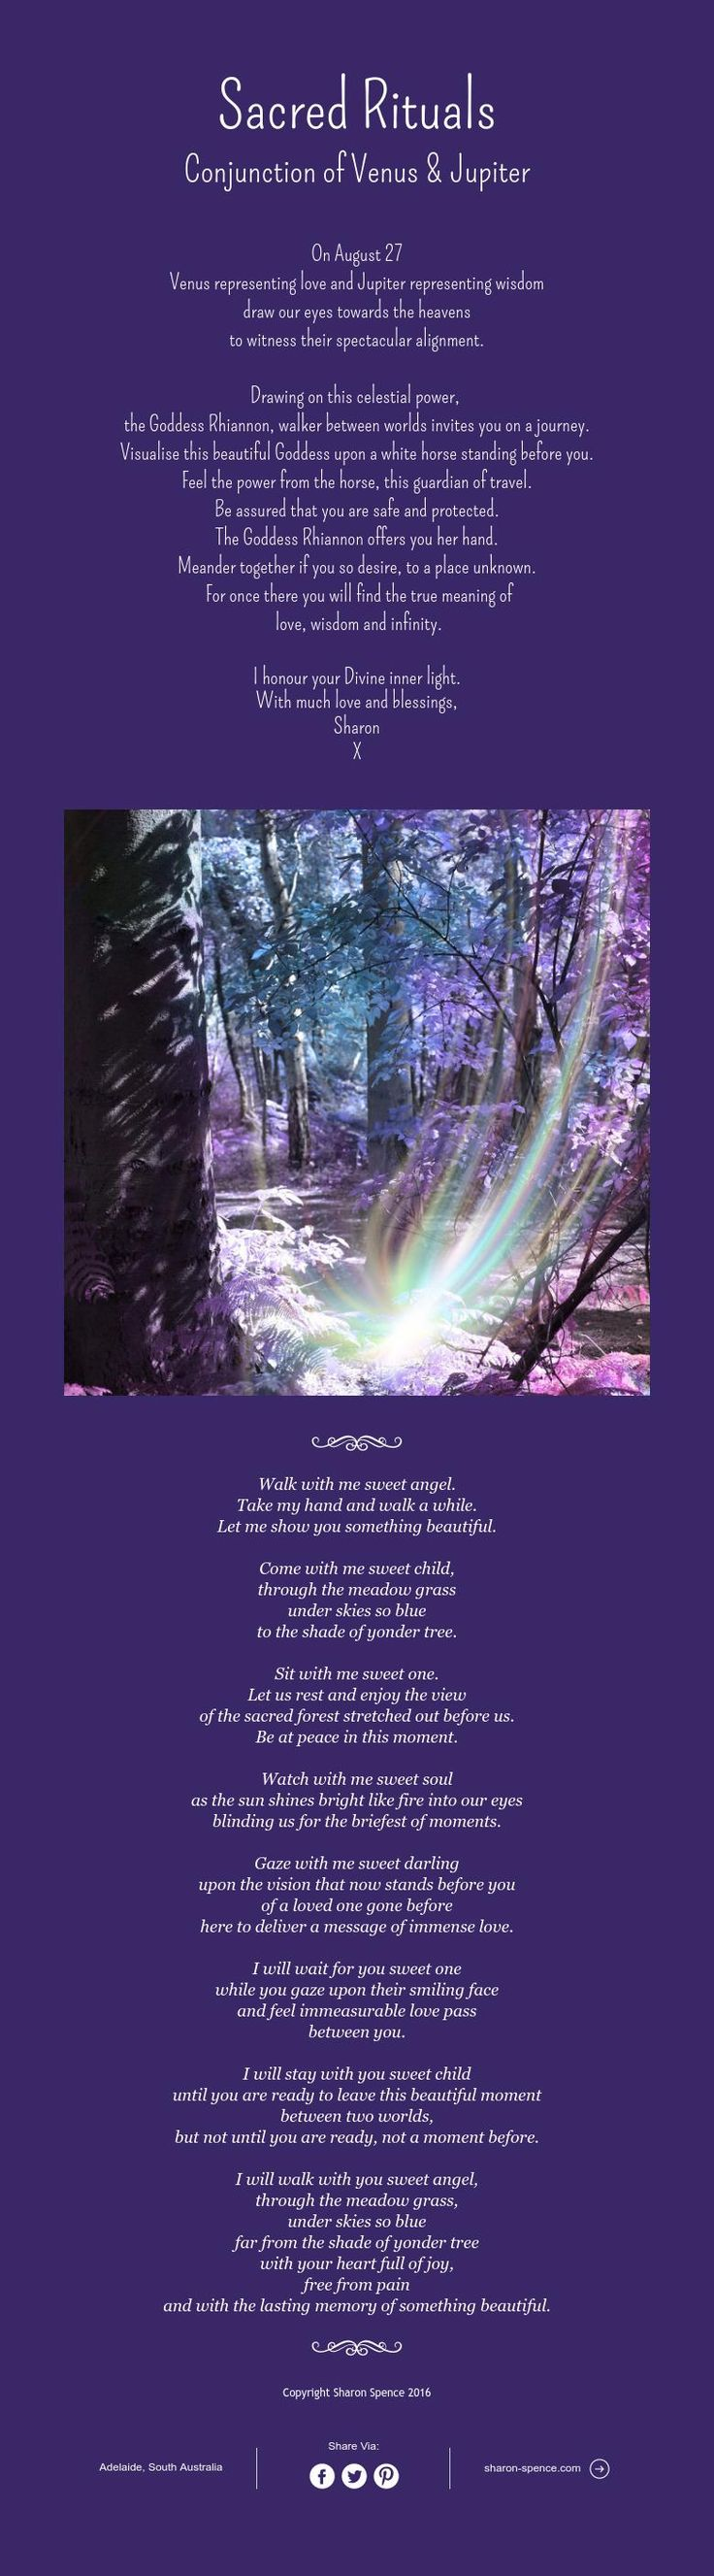 wiccan beliefs and practices Wicca practices are spiritual power tools for wiccans first, ones that develop skills necessary to the practice of wicca second, practices that are essential to the experience of wicca .